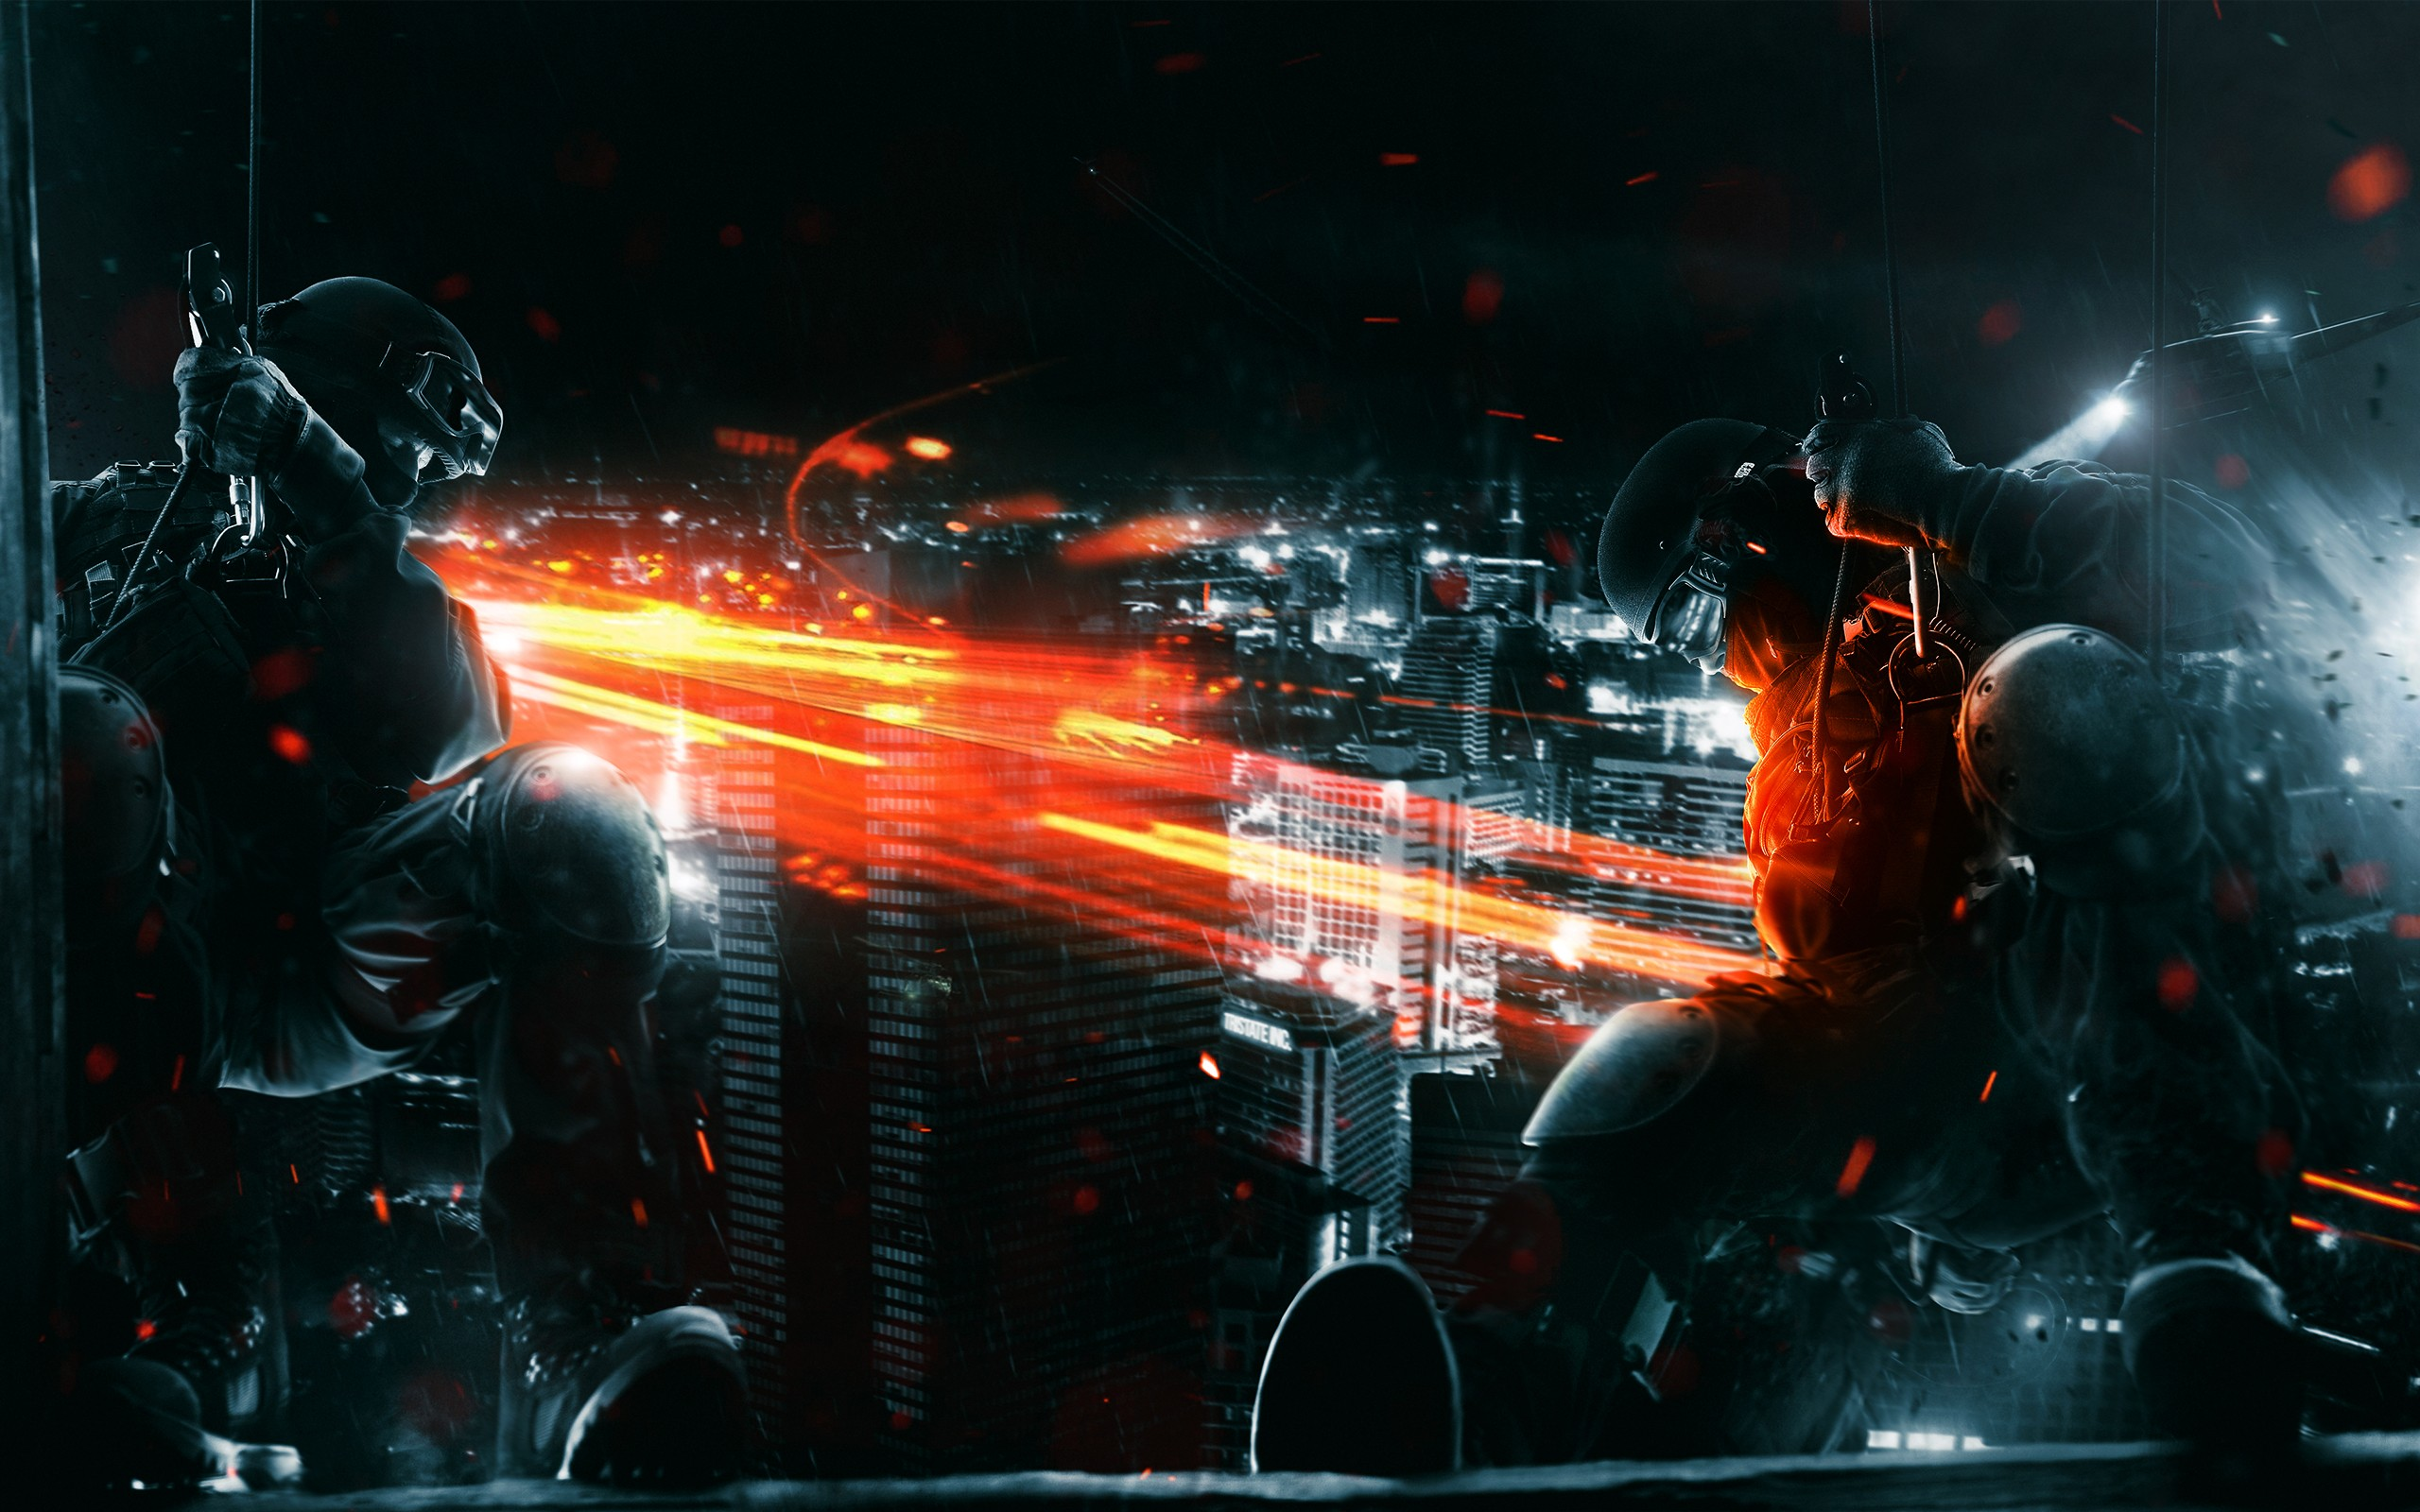 Download Wallpaper 1280x1280 Battlefield 4 Game Ea: Battlefield Full HD Wallpaper And Background Image